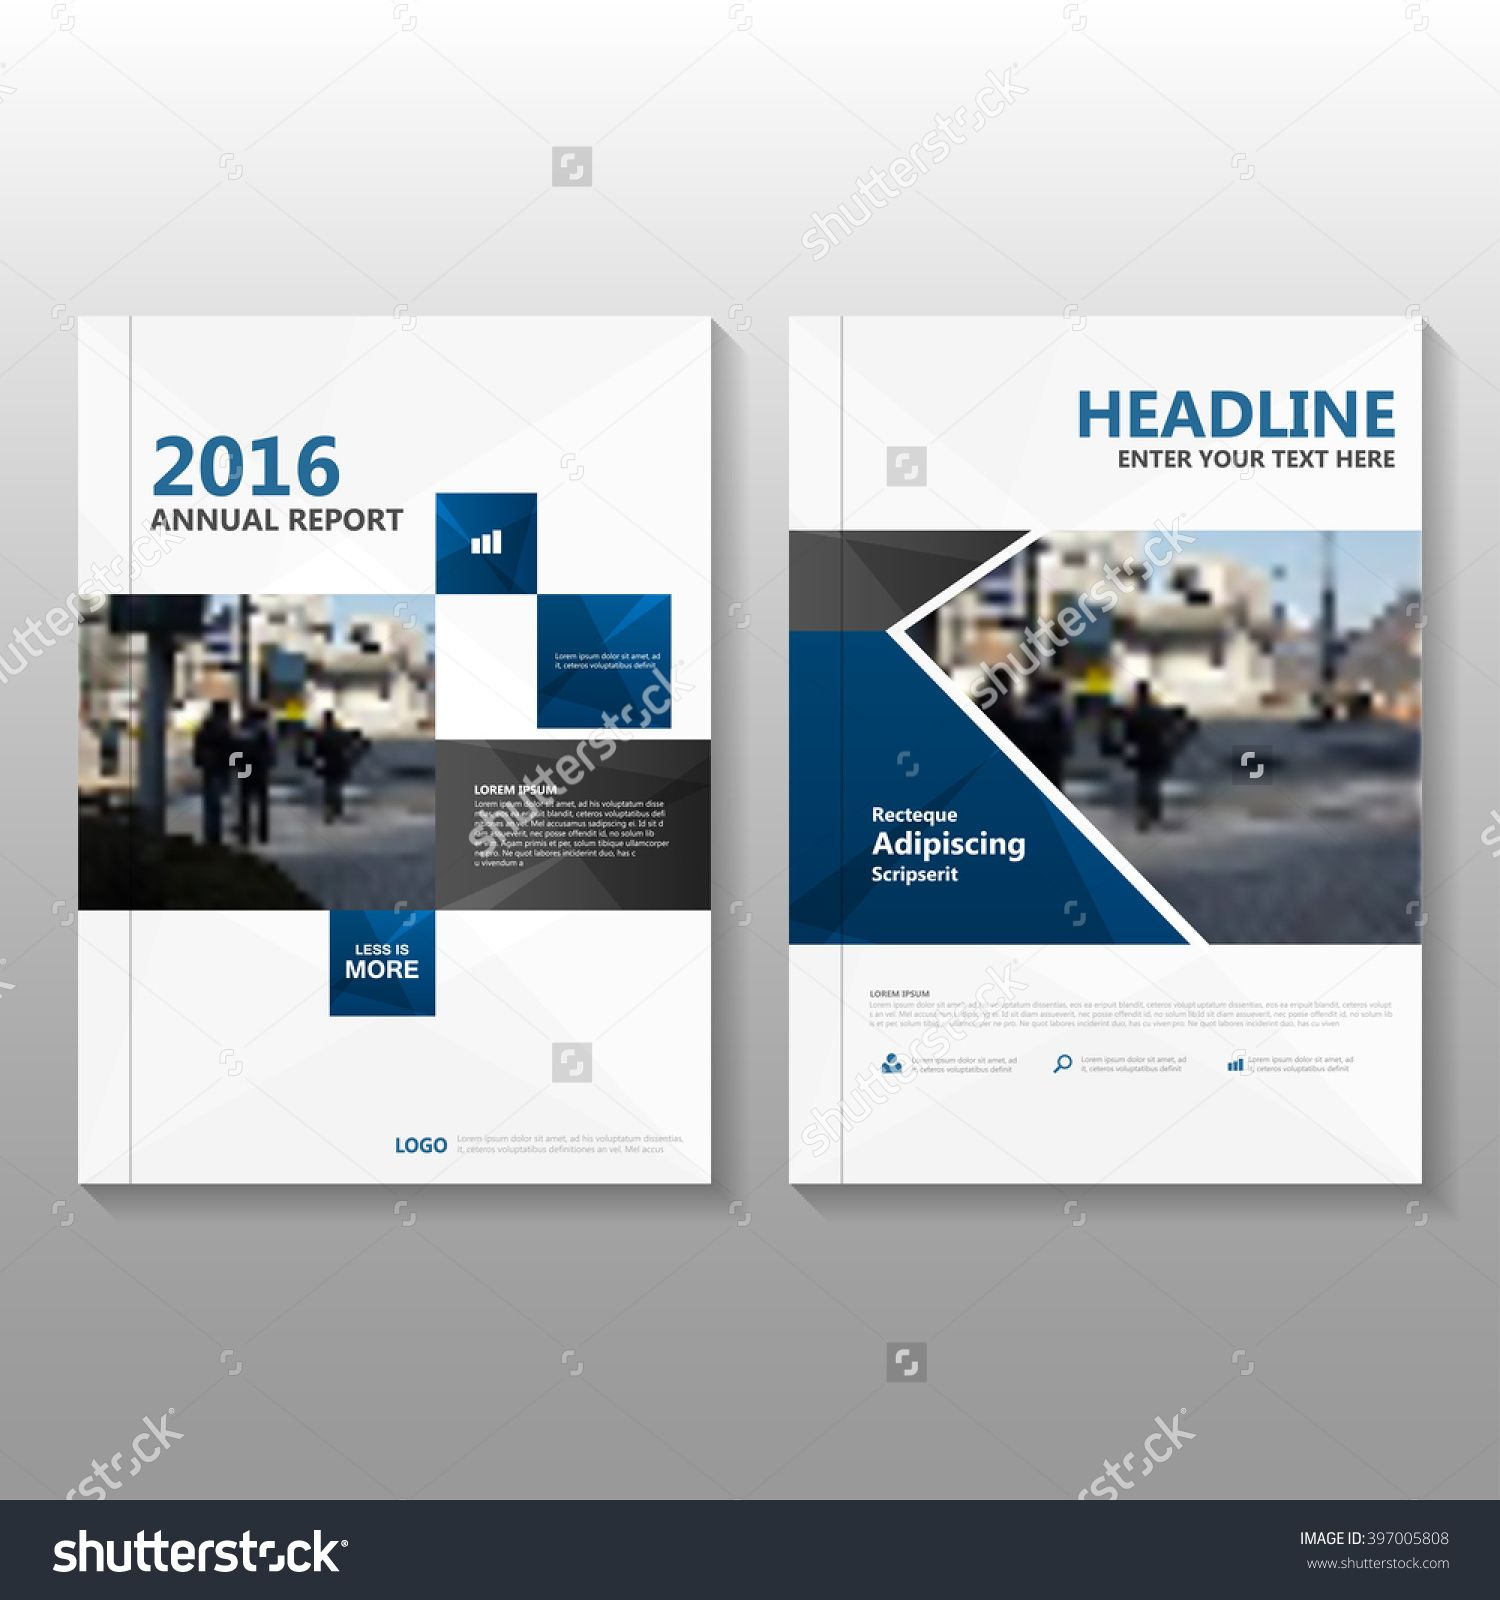 Design book covers online - Blue Black Elegance Vector Annual Report Leaflet Brochure Flyer Template Design Book Cover Layout Design